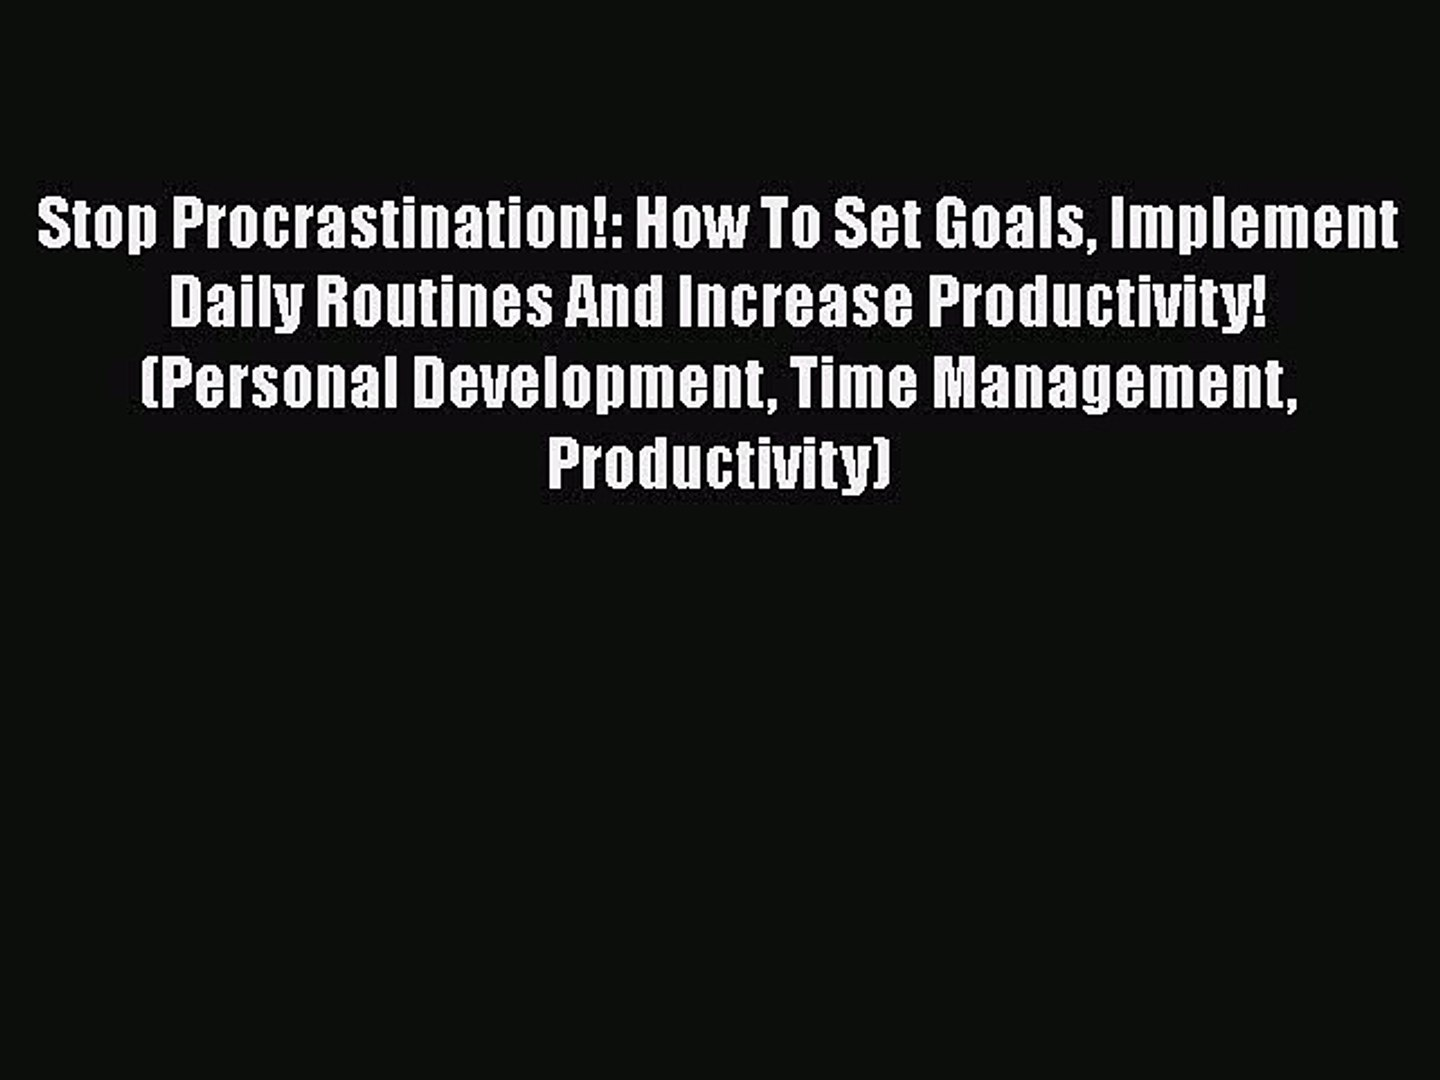 [PDF] Stop Procrastination!: How To Set Goals Implement Daily Routines And Increase Productivity!